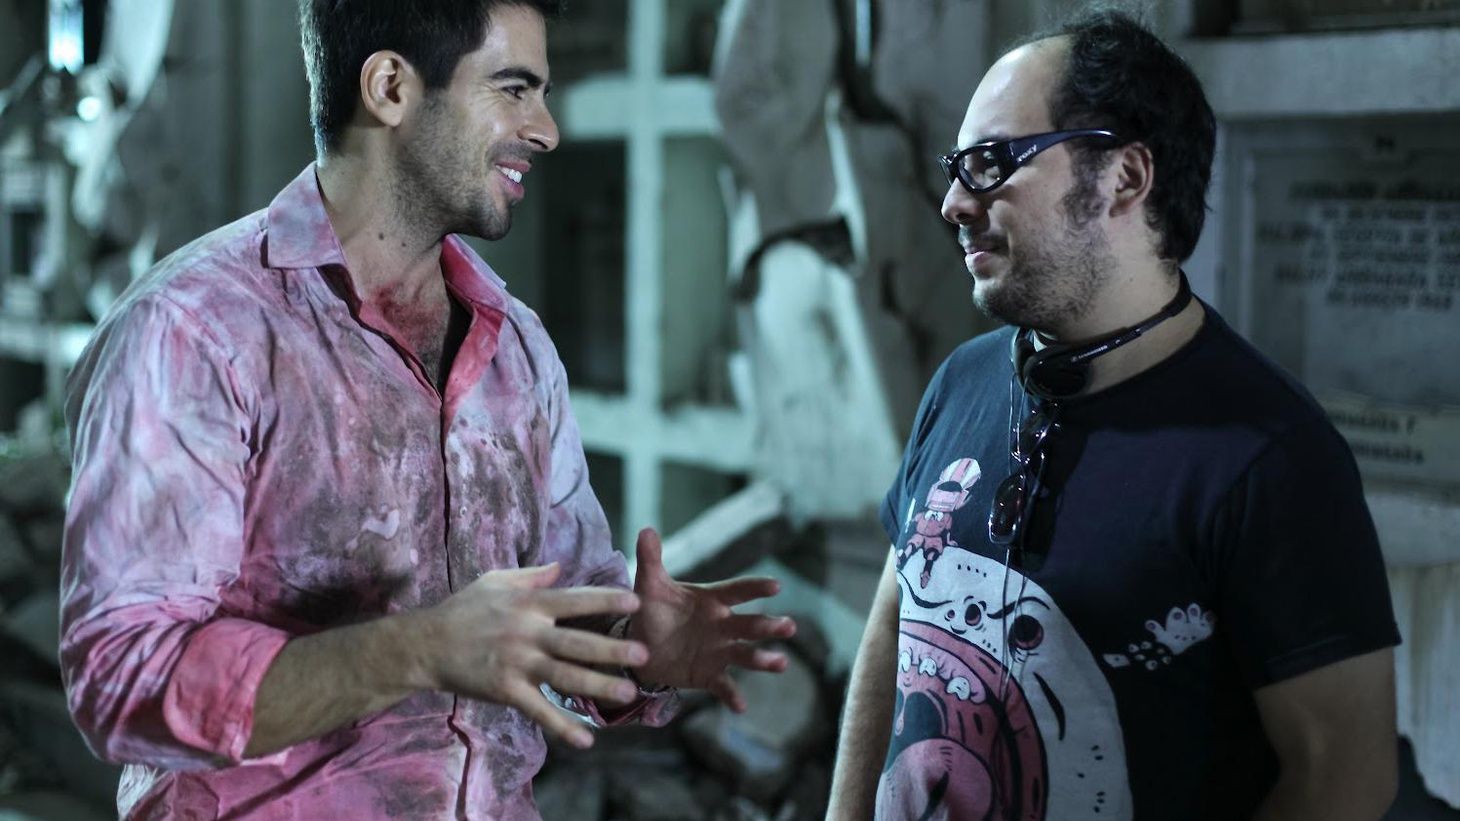 Eli Roth explains what happens when you cross a film purist with an octocam.